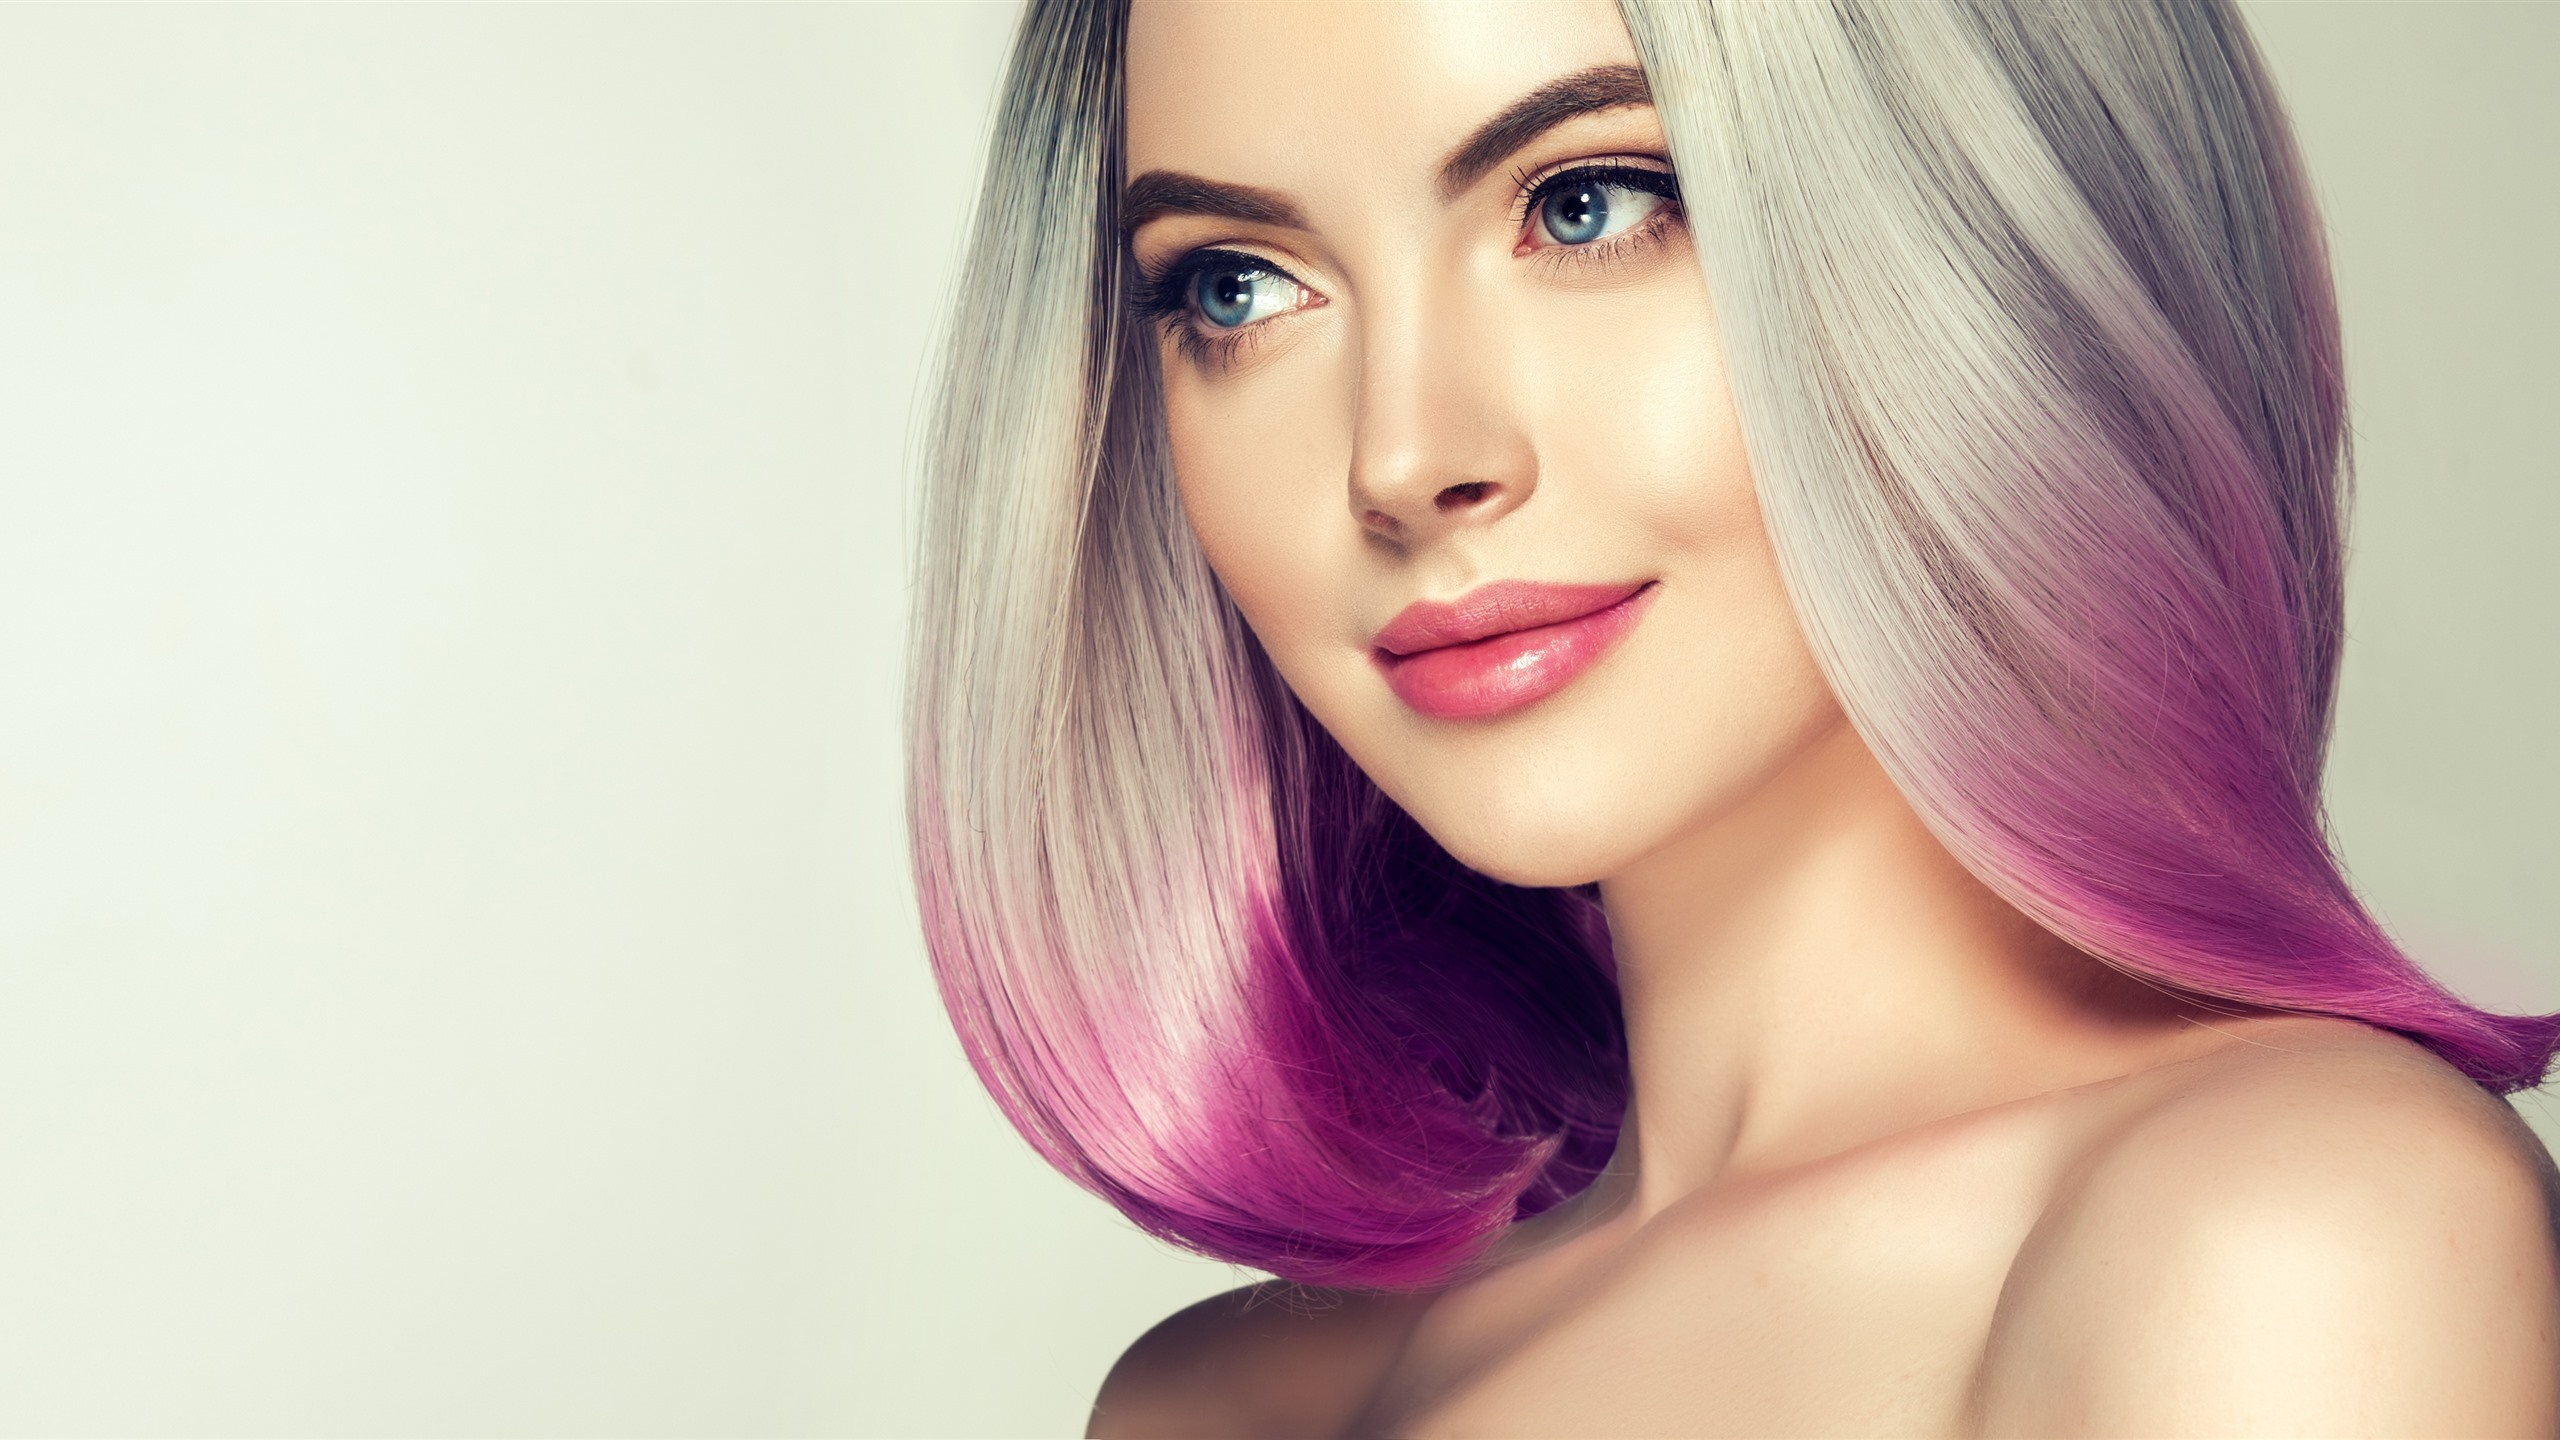 What is the link between hair color and personality